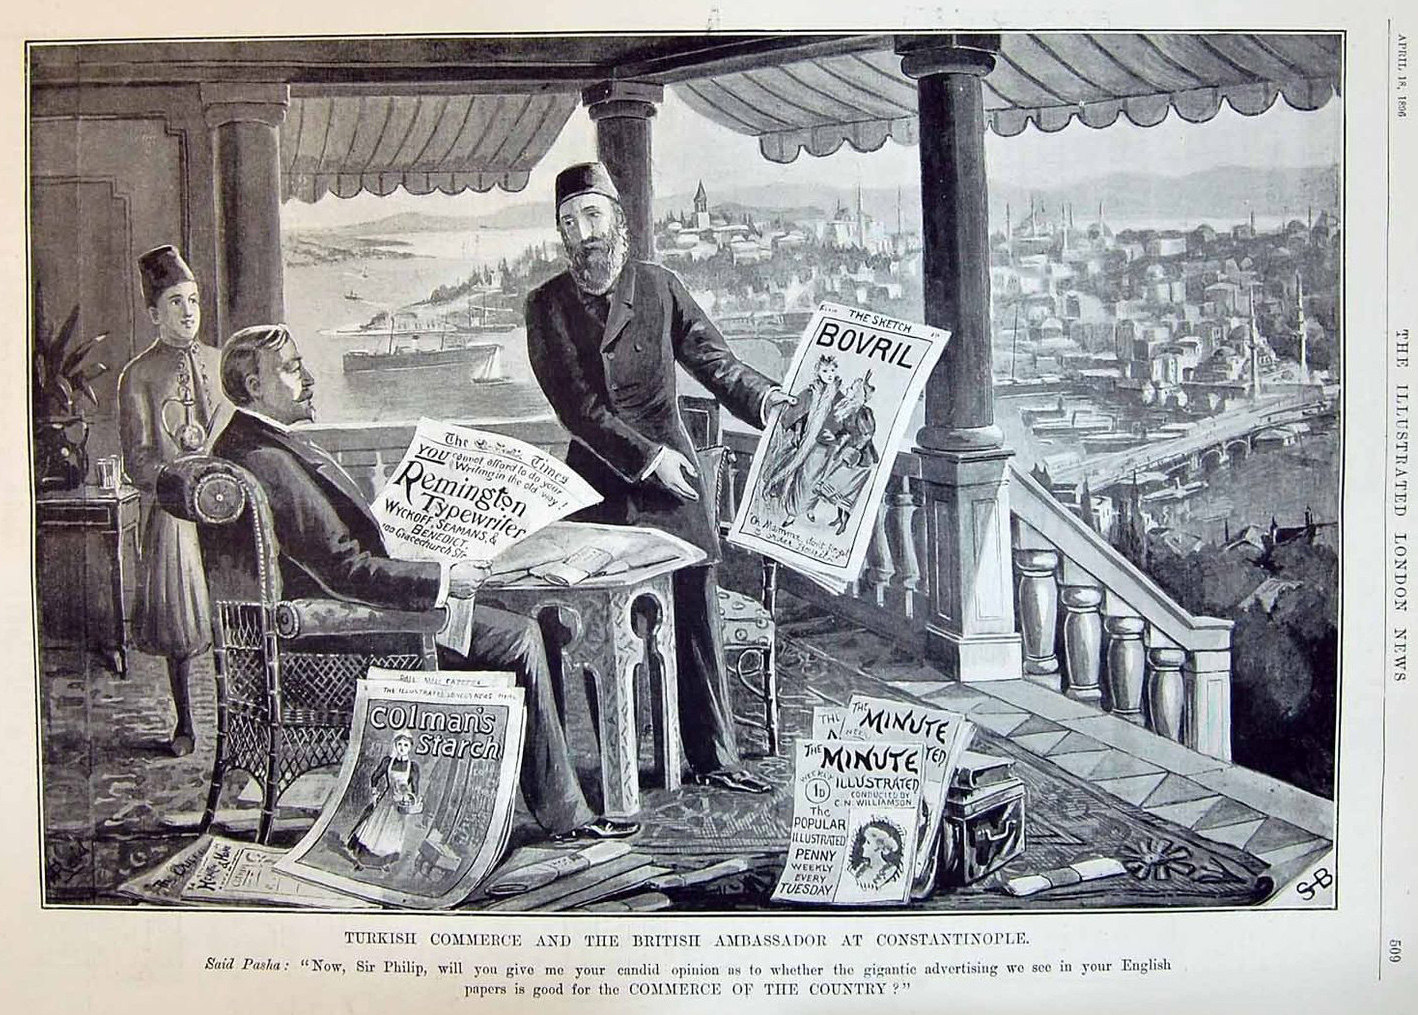 British Embassy Of Constantinople Depicted In The Press